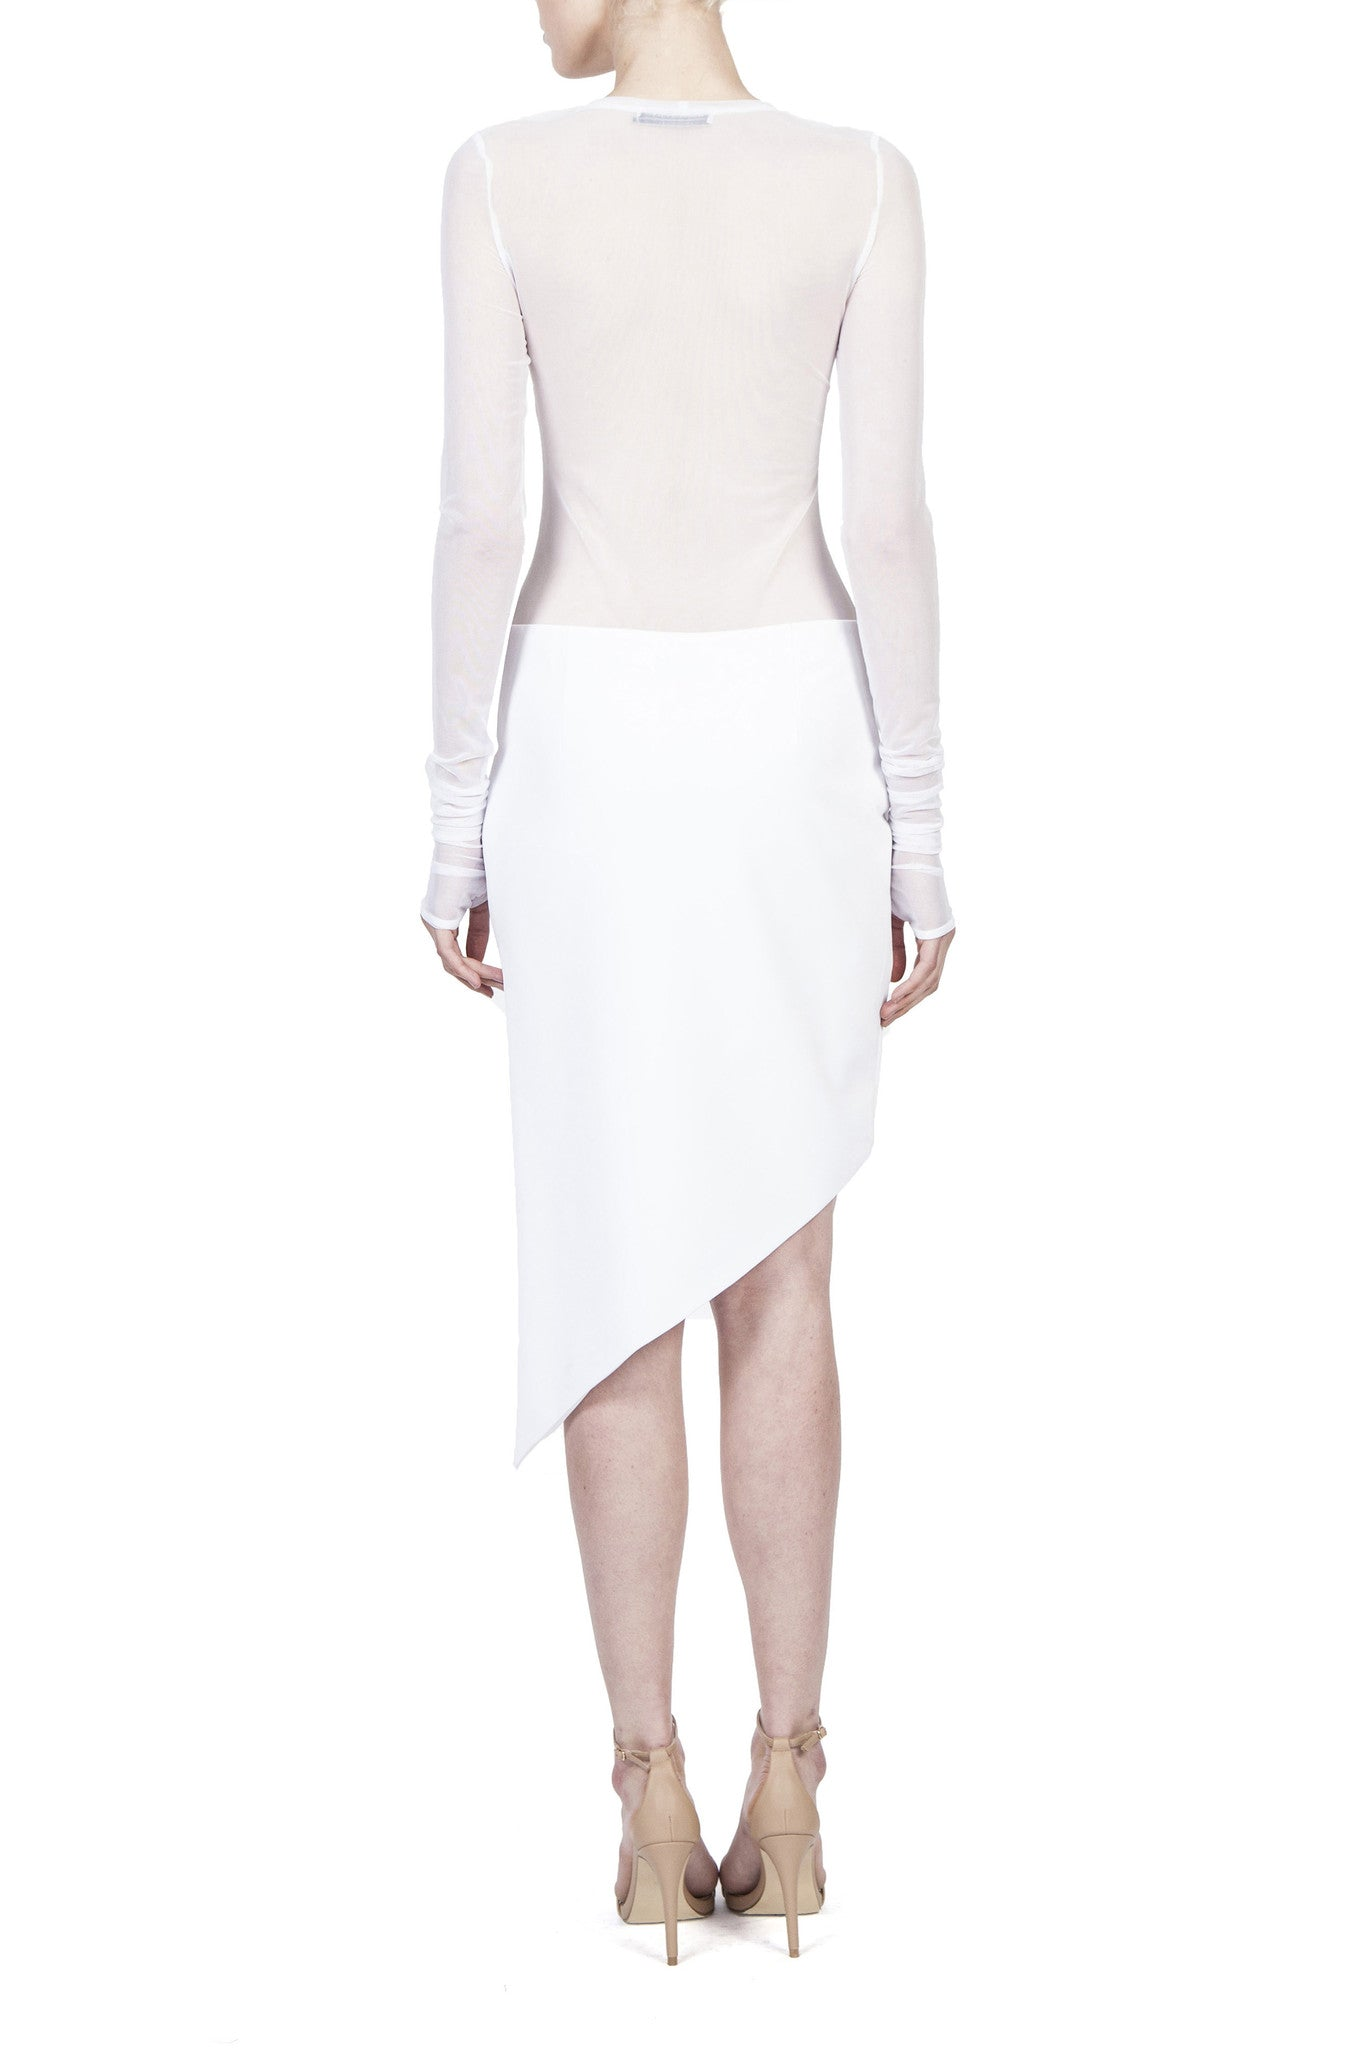 HELDER DIEGO,ASYMMETRICAL MINI SKIRT,Bottom - HELDER DIEGO